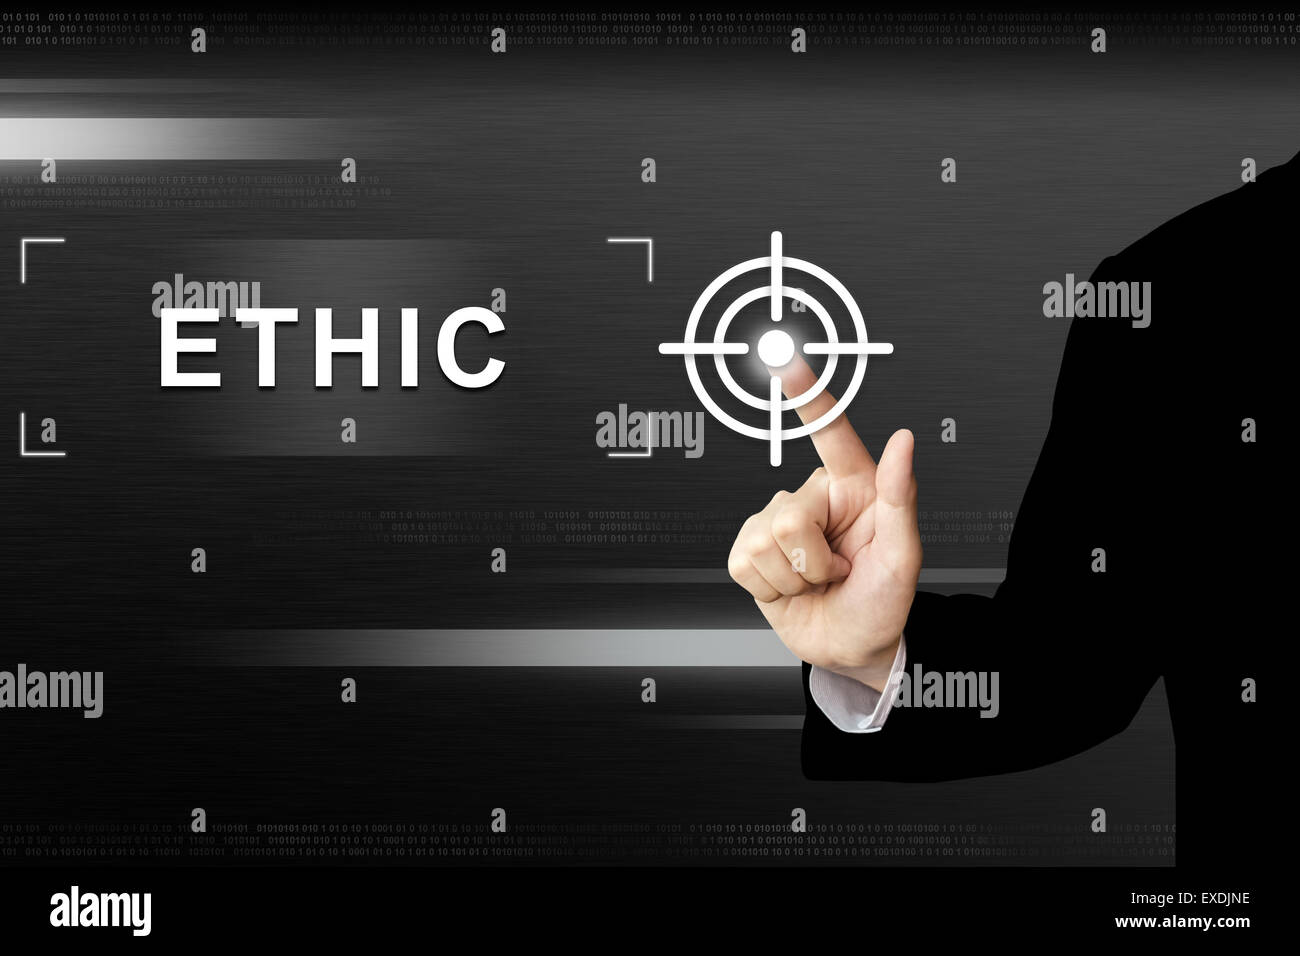 business hand clicking ethic button on a touch screen interface - Stock Image